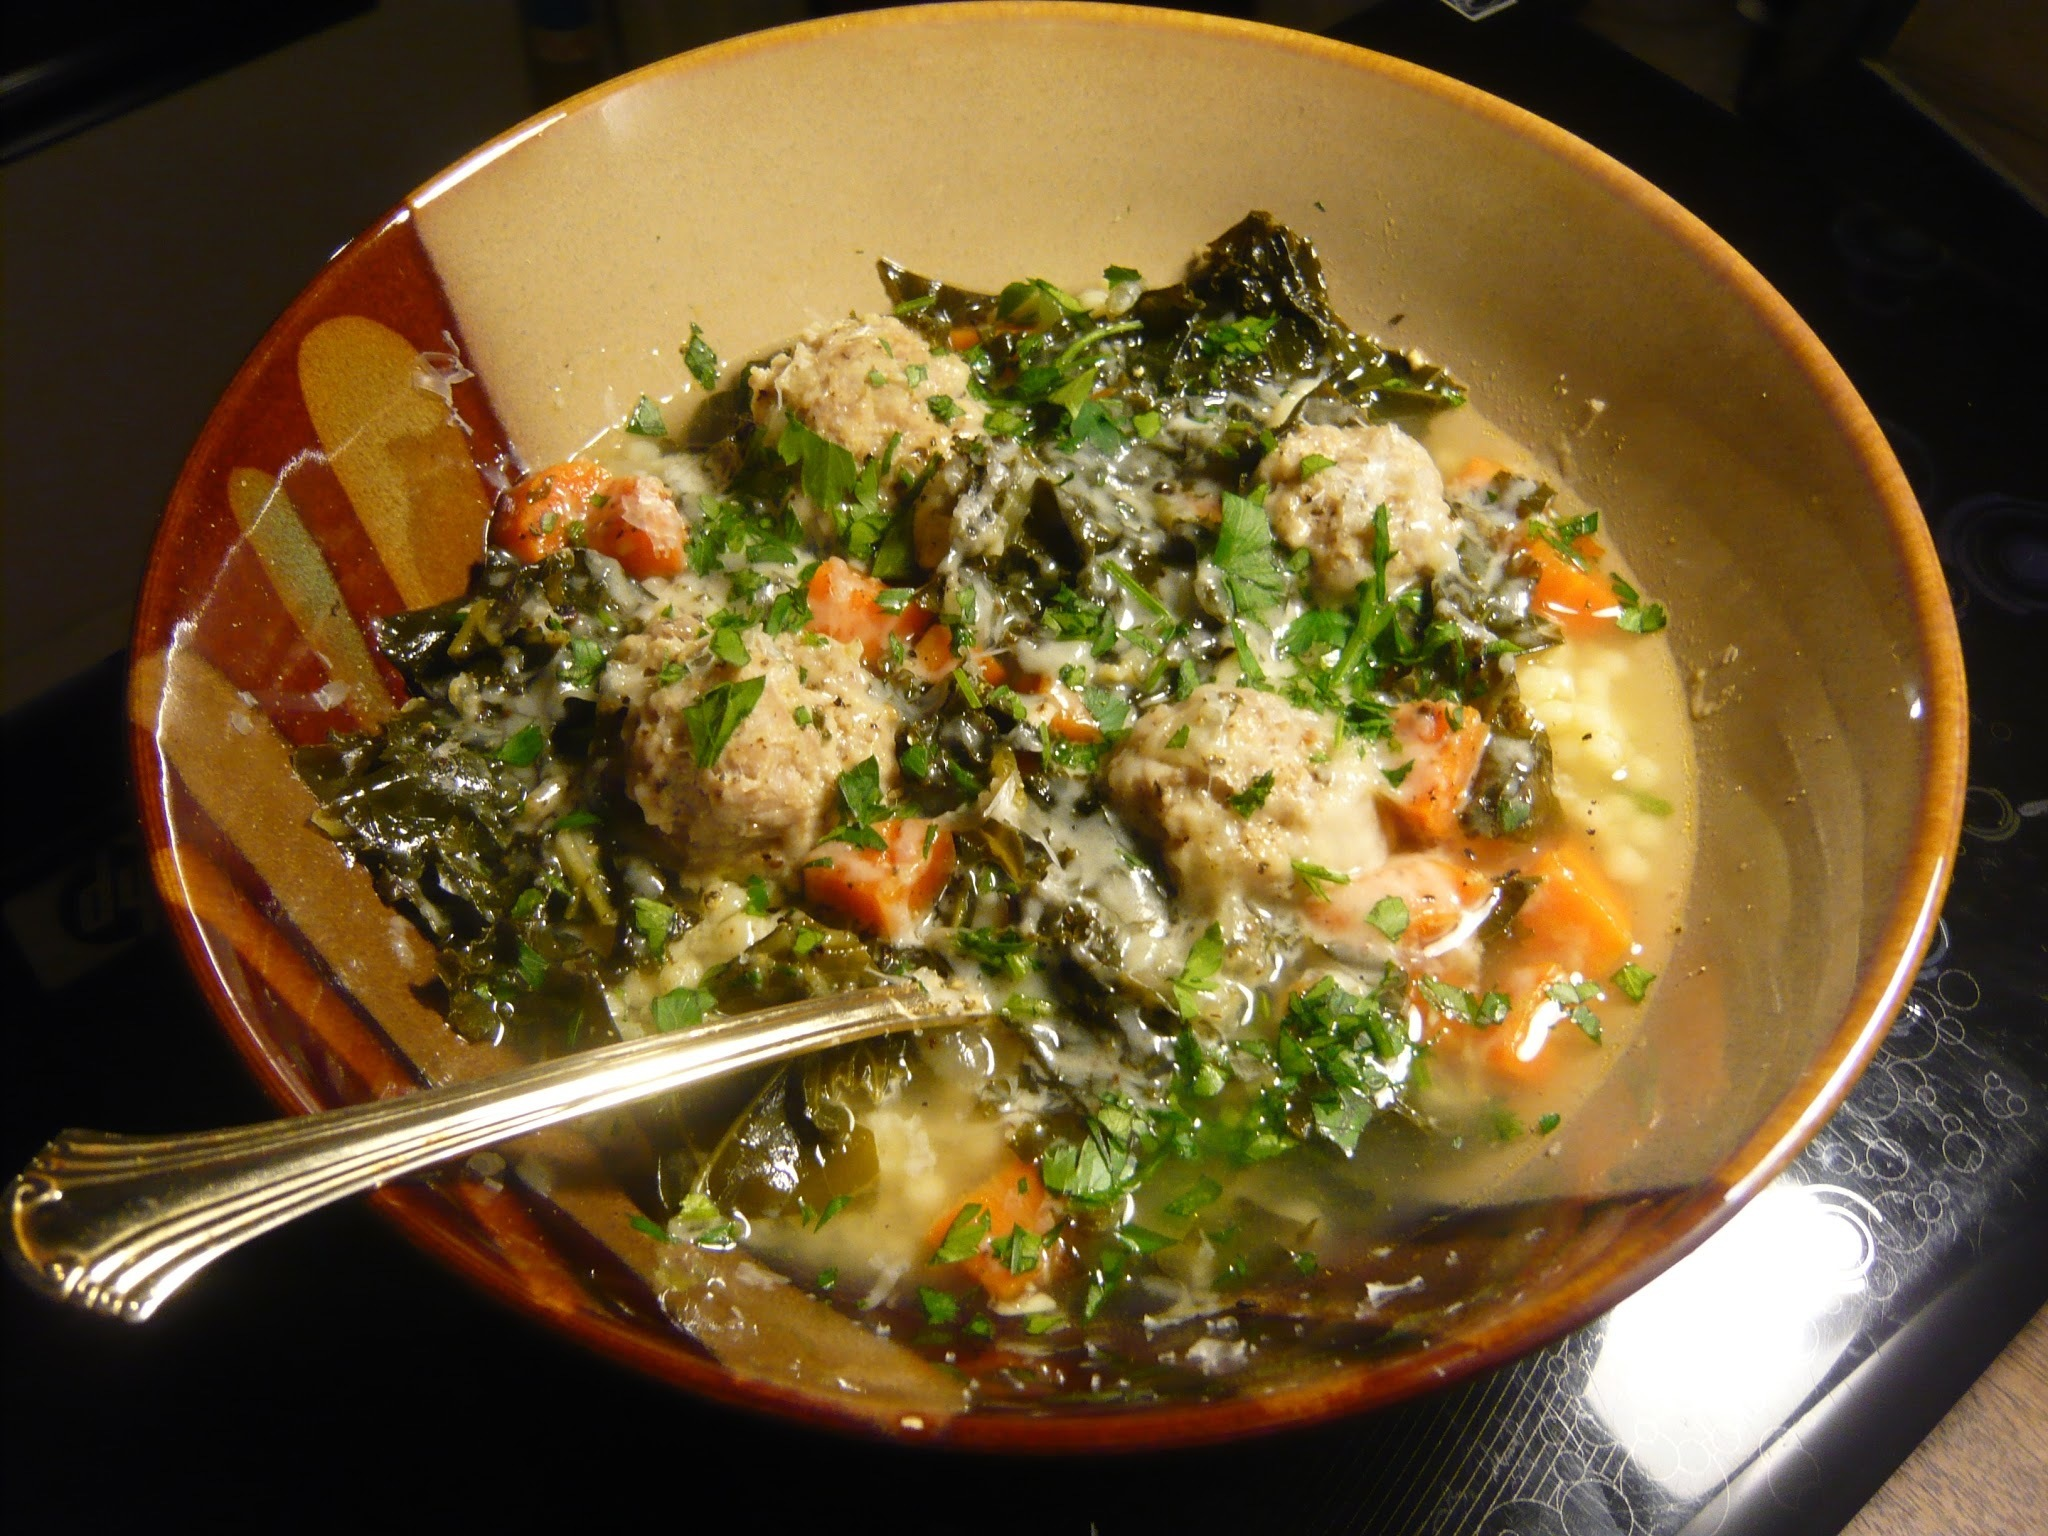 Raley's Italian Wedding Soup Reinvented